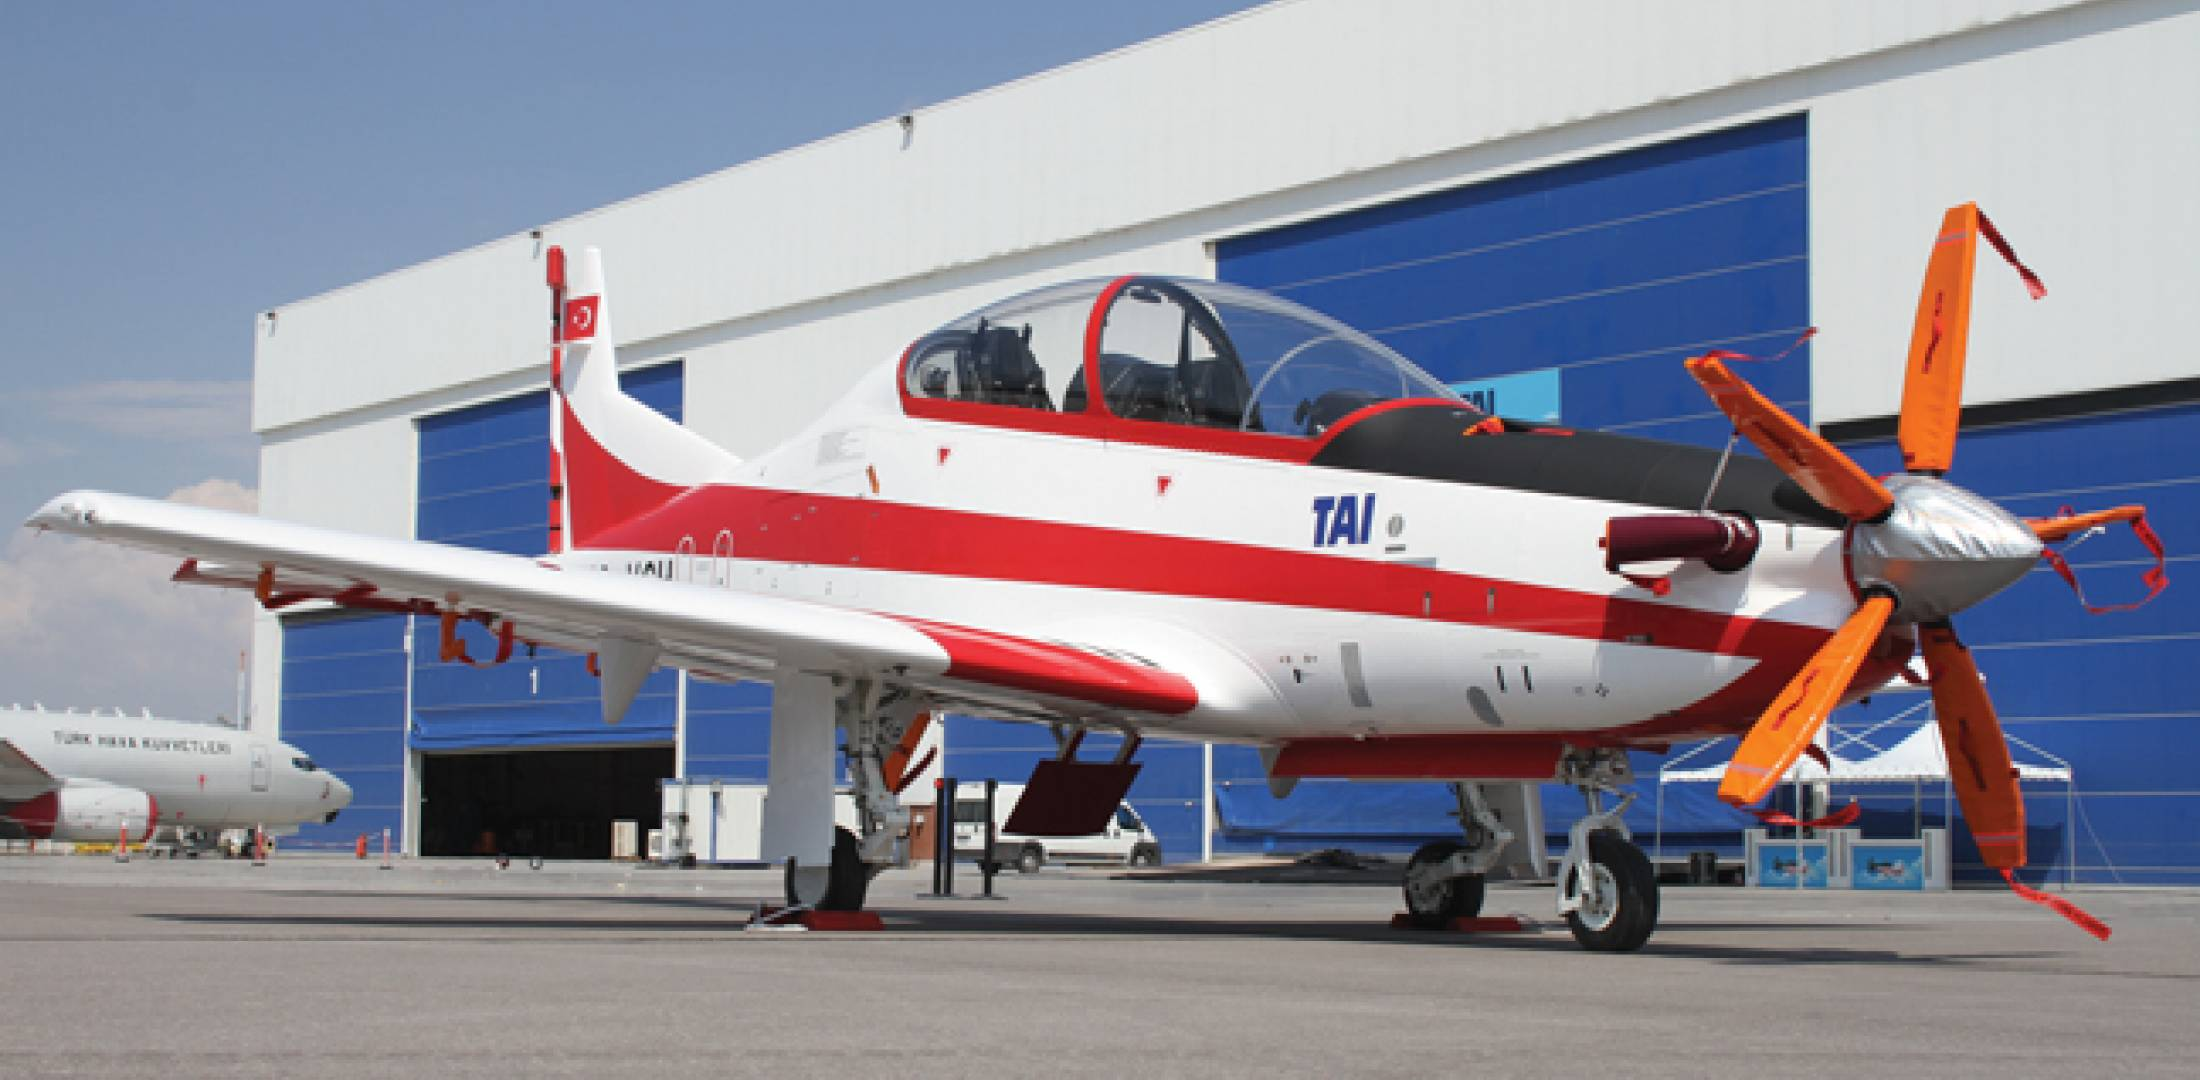 TAI's Hurkus, a tandem two-seat, low-wing, single-engine turboprop (left), is being developed as a basic trainer and ground attack aircraft for the Turkish armed forces. The prototype Hurkus, TU-VCH, made its first flight on Aug. 29, 2013, a year after it was rolled out at TAI's Ankara facility.